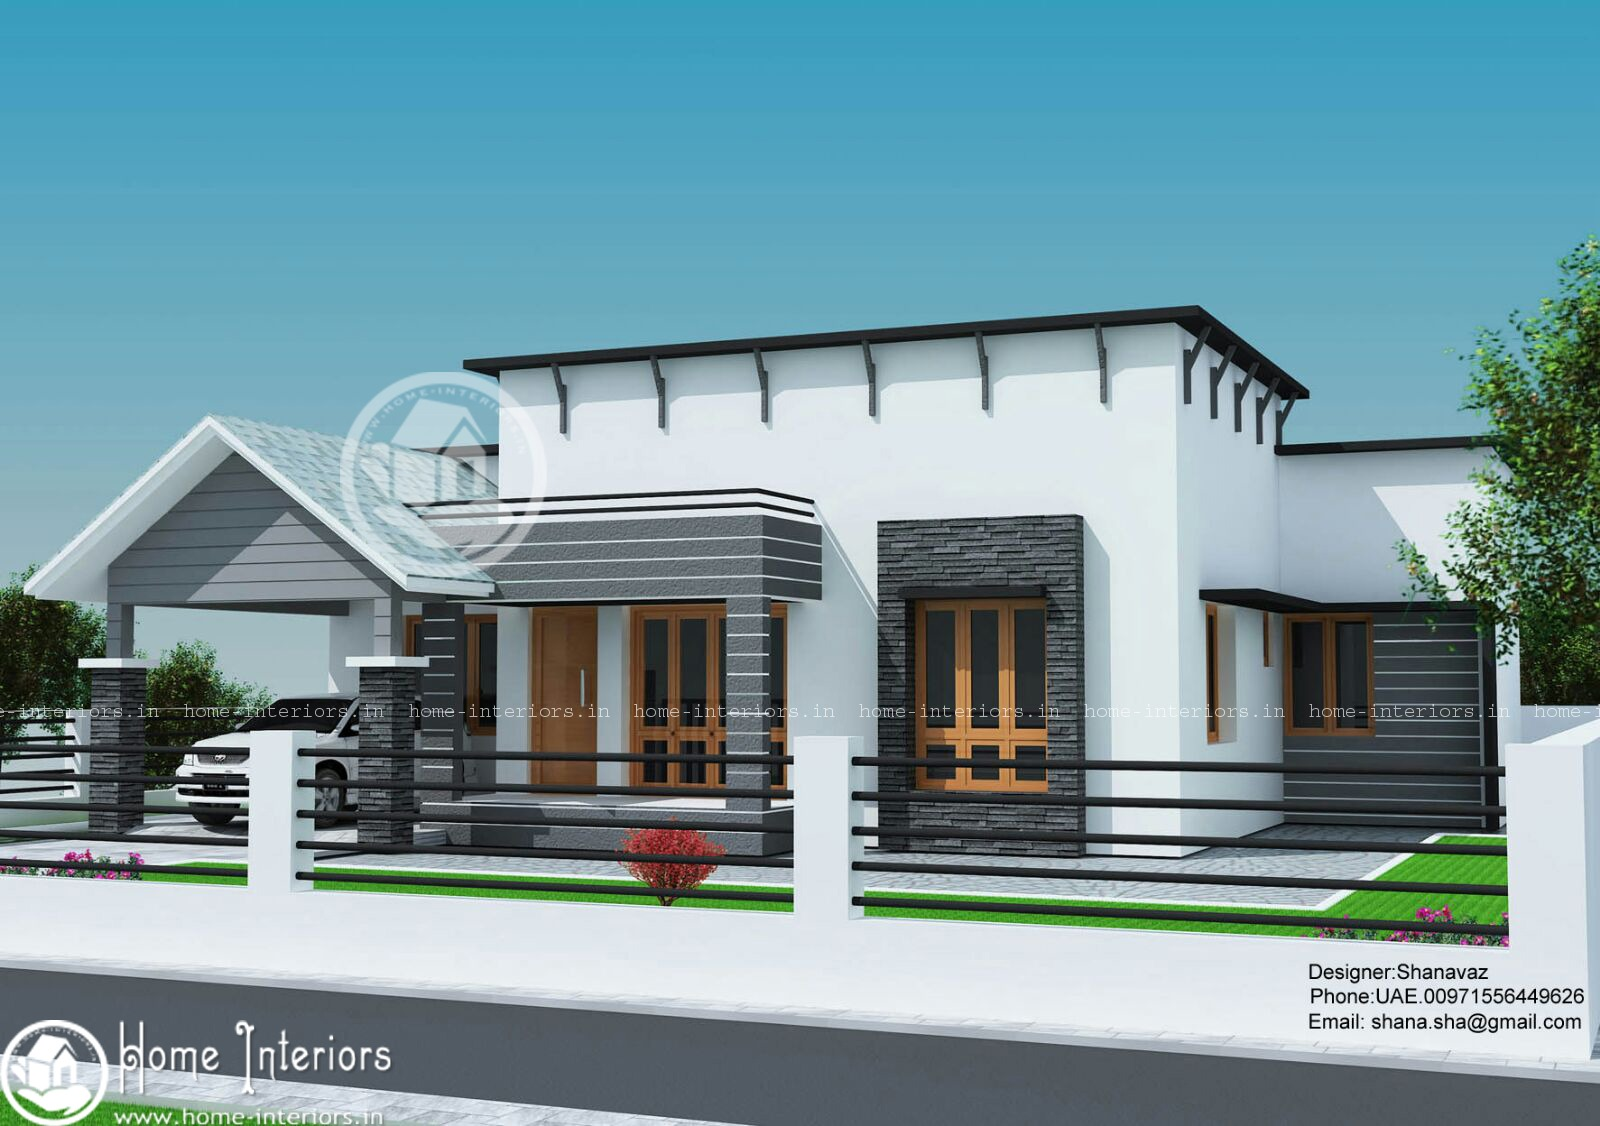 1300 sq ft single floor contemporary home design for Single floor house plans